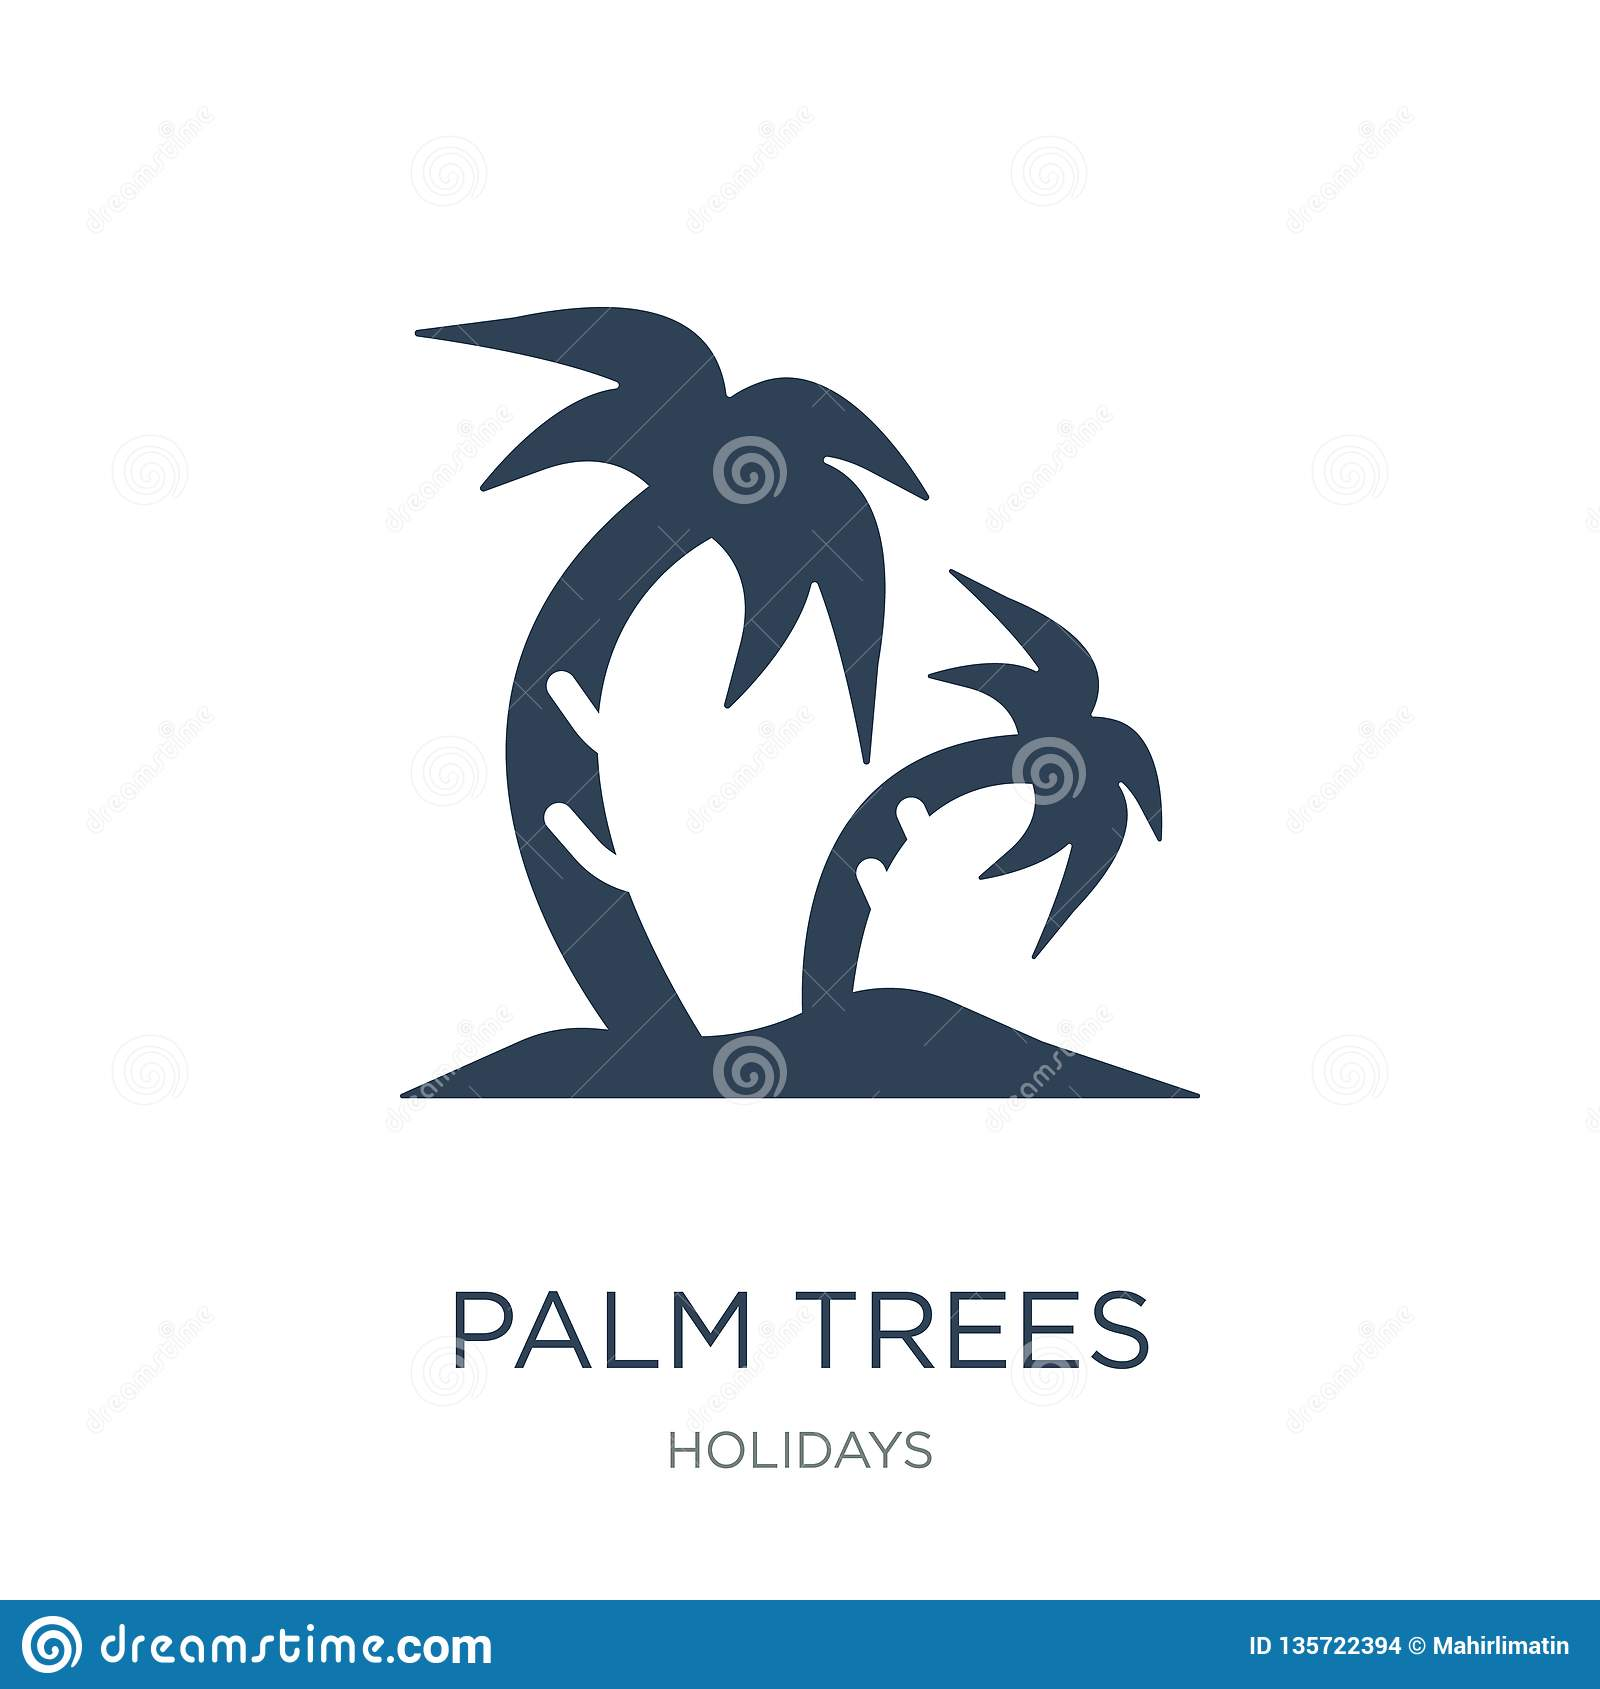 palm trees icon in trendy design style. palm trees icon isolated on white background. palm trees vector icon simple and modern